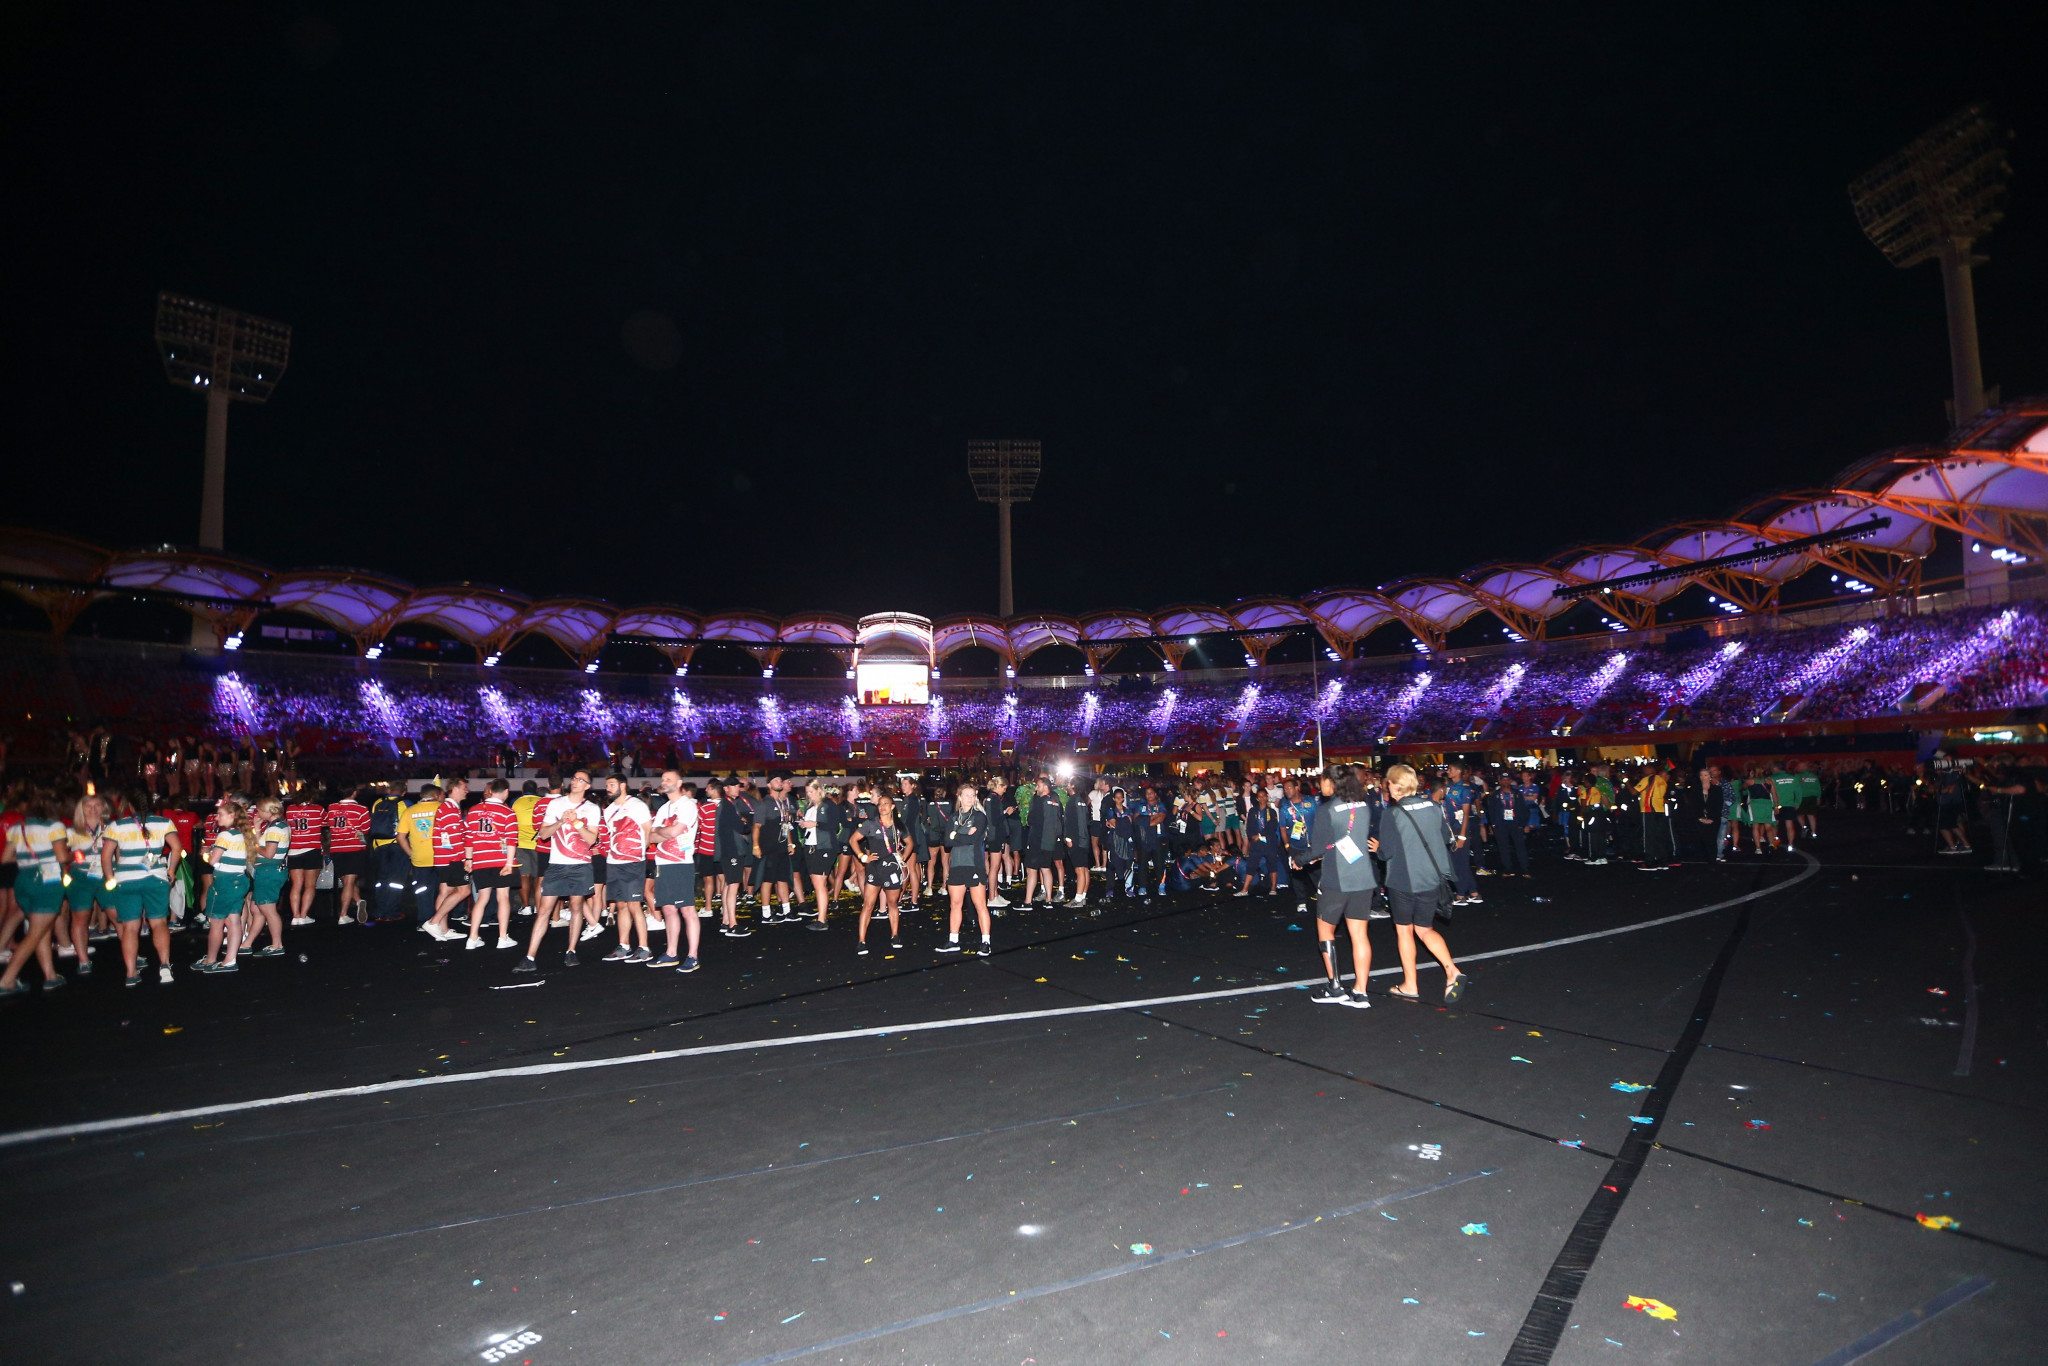 Athletes who competed at the Commonwealth Games here walked into the stadium in the pre-show of the Ceremony and before the spectacle was broadcast live ©Getty Images